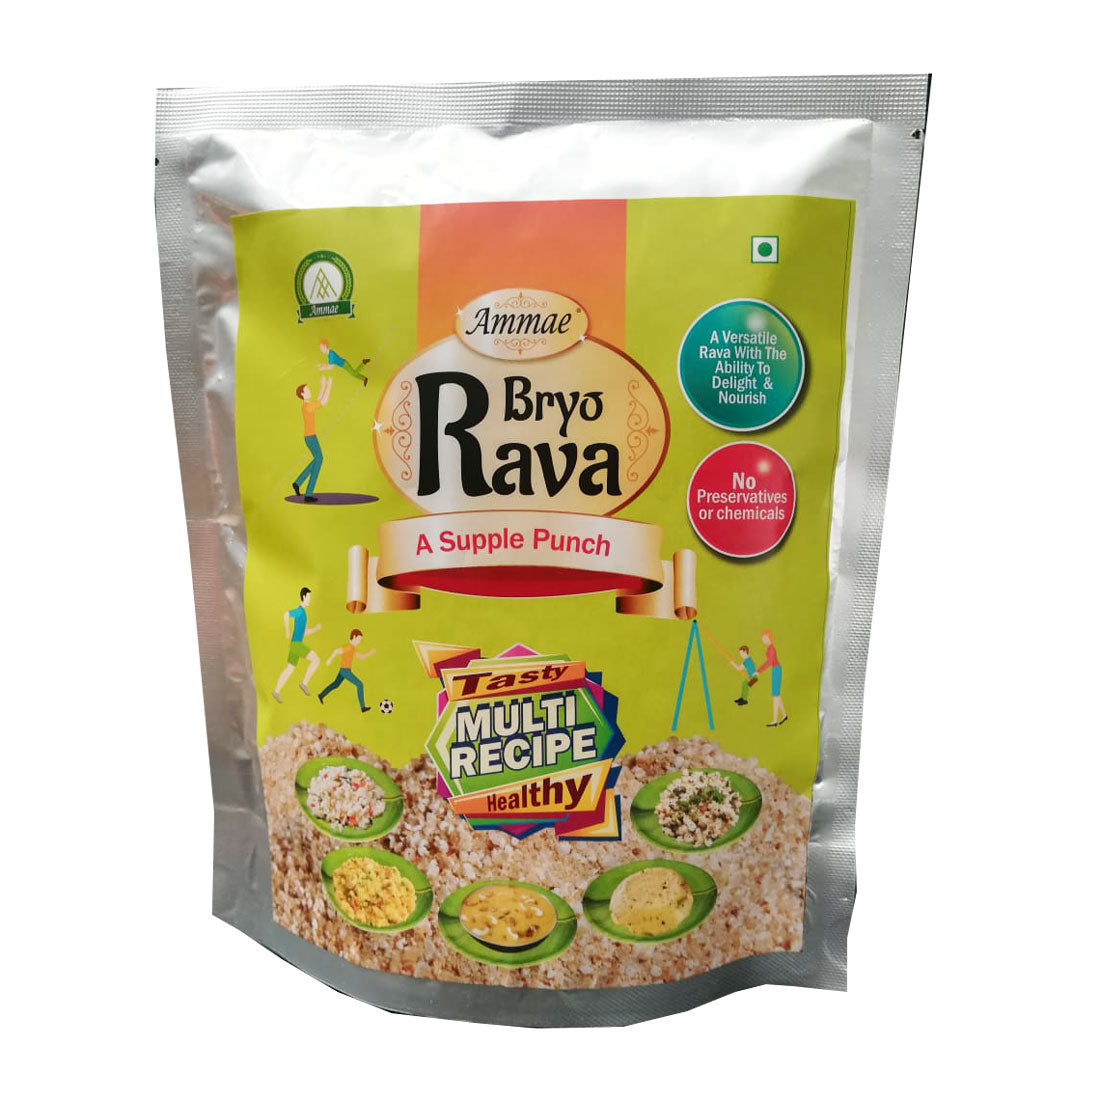 Bryo Rava - Multi recipe product